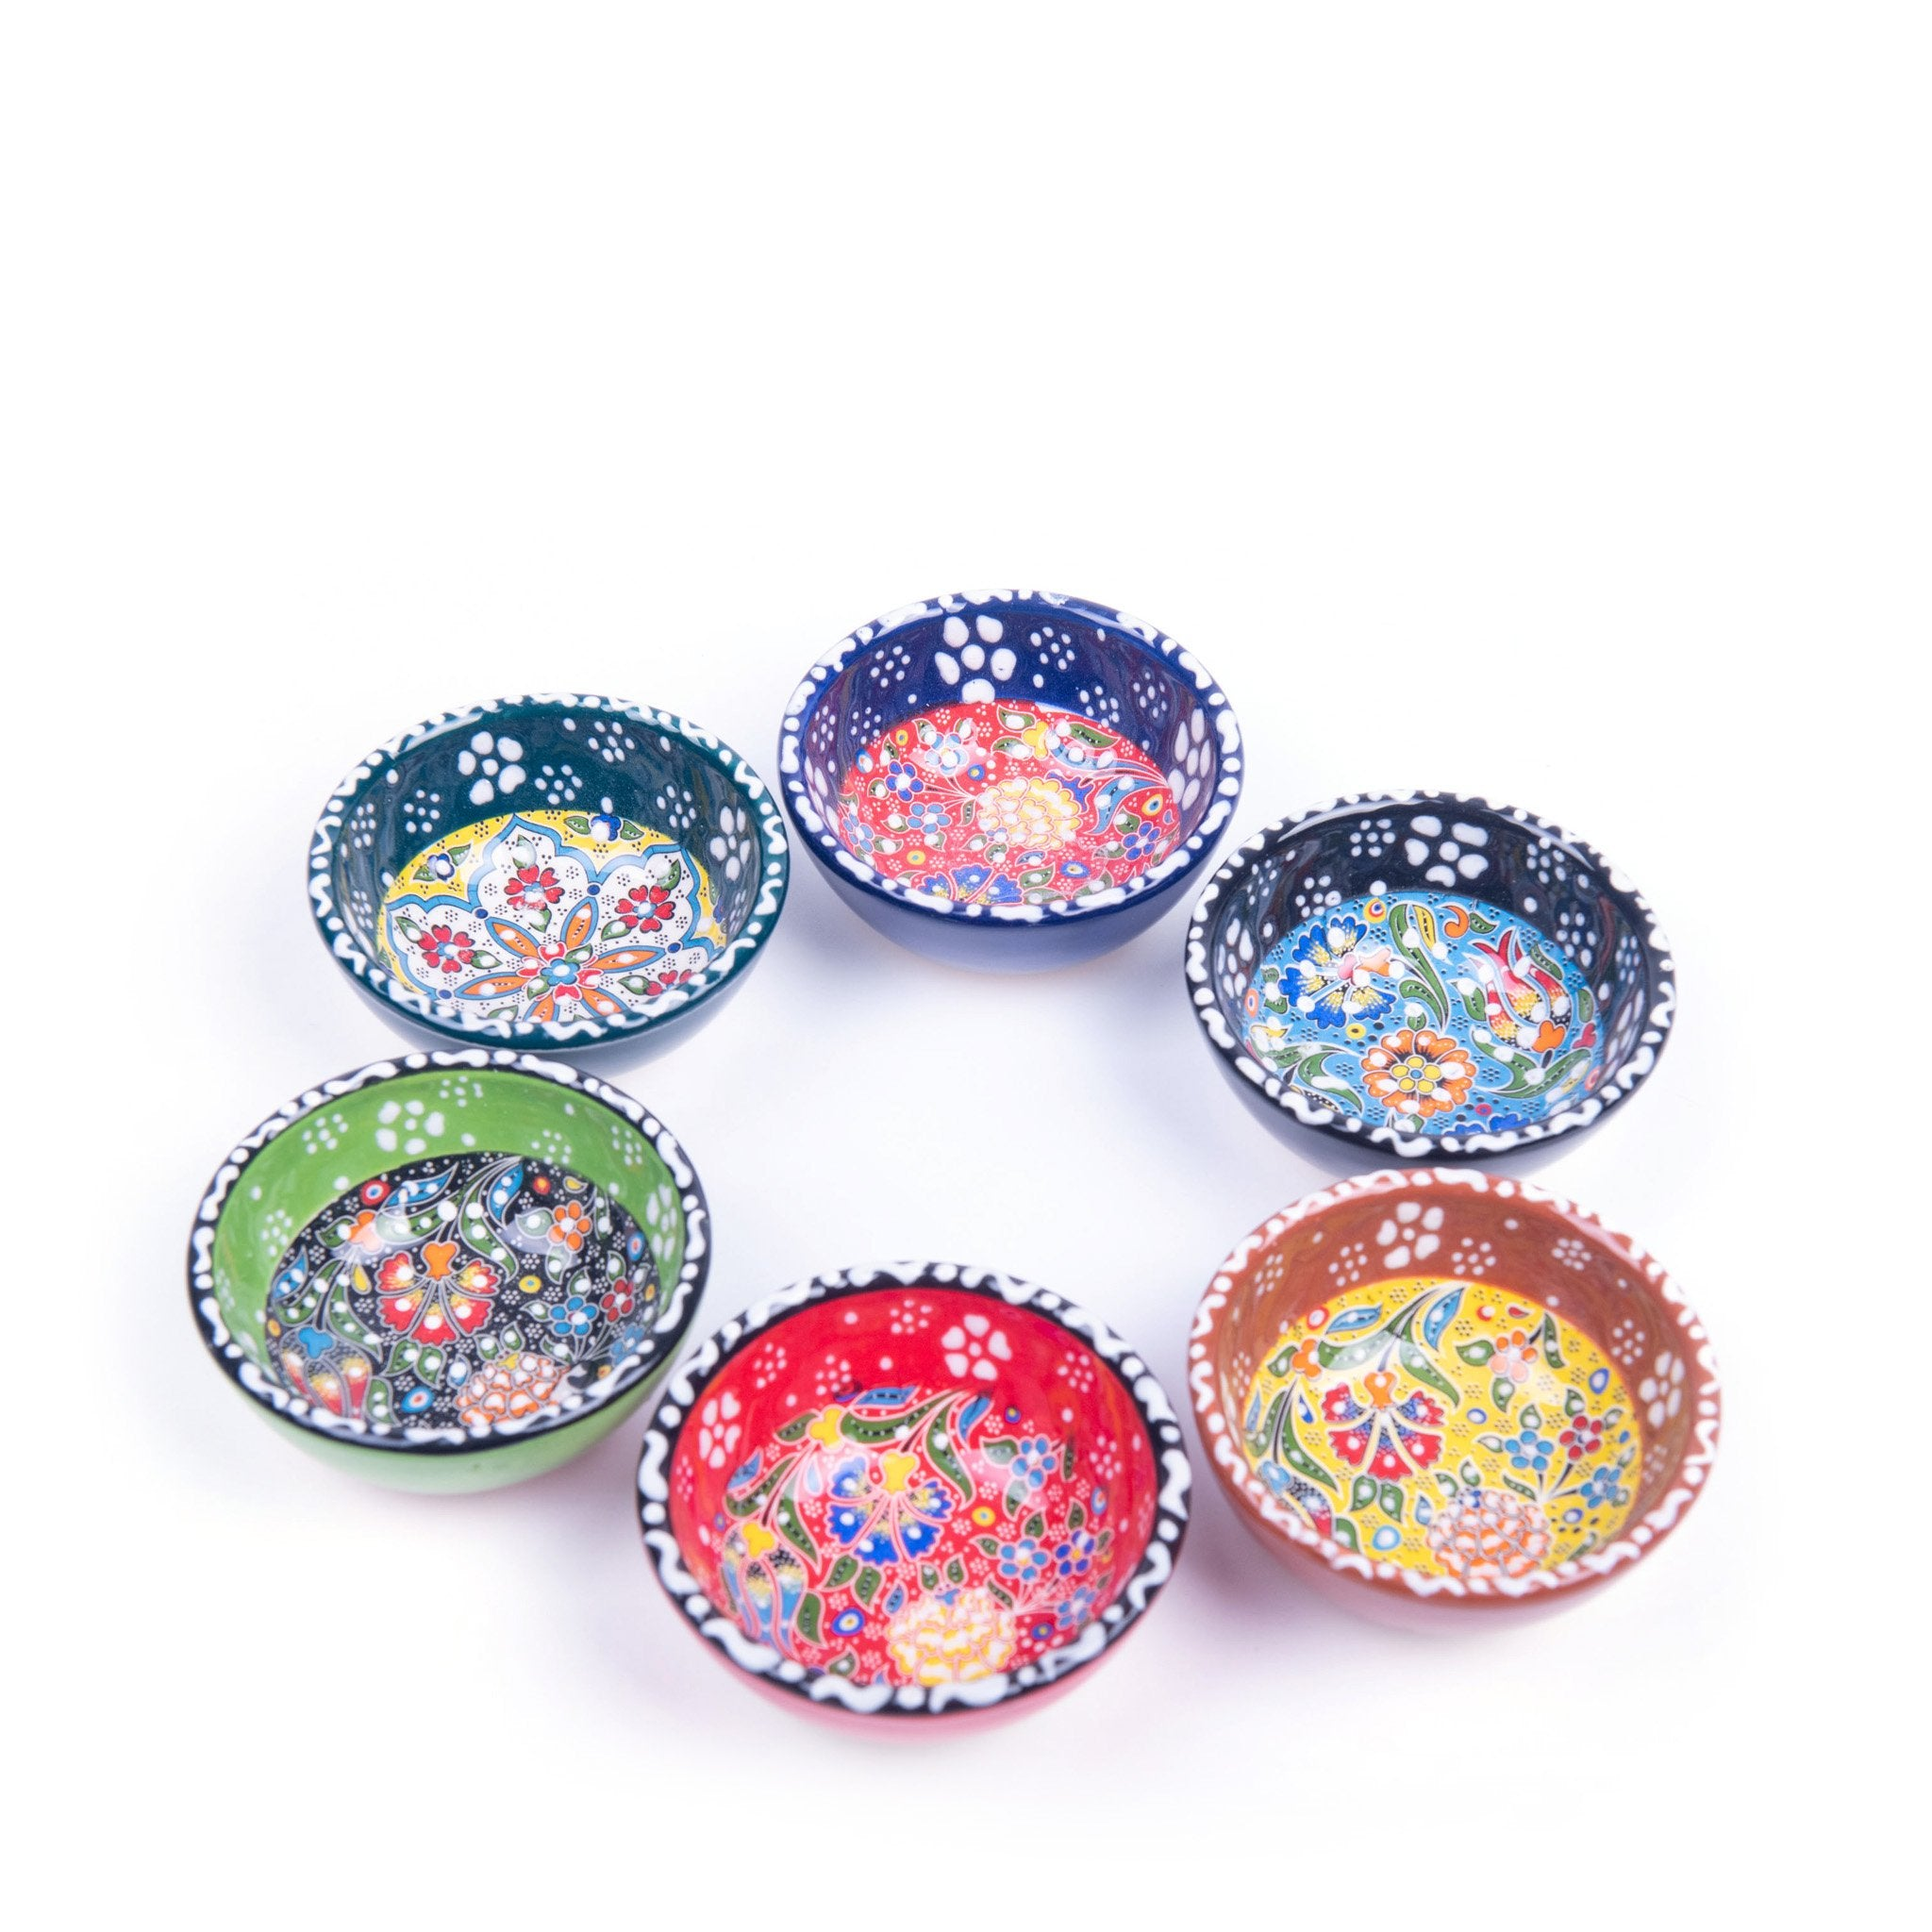 Turkish Ceramic Kutahya Design Handmade Flat Bowl Set Of Six - 8 cm (3.2'')-2